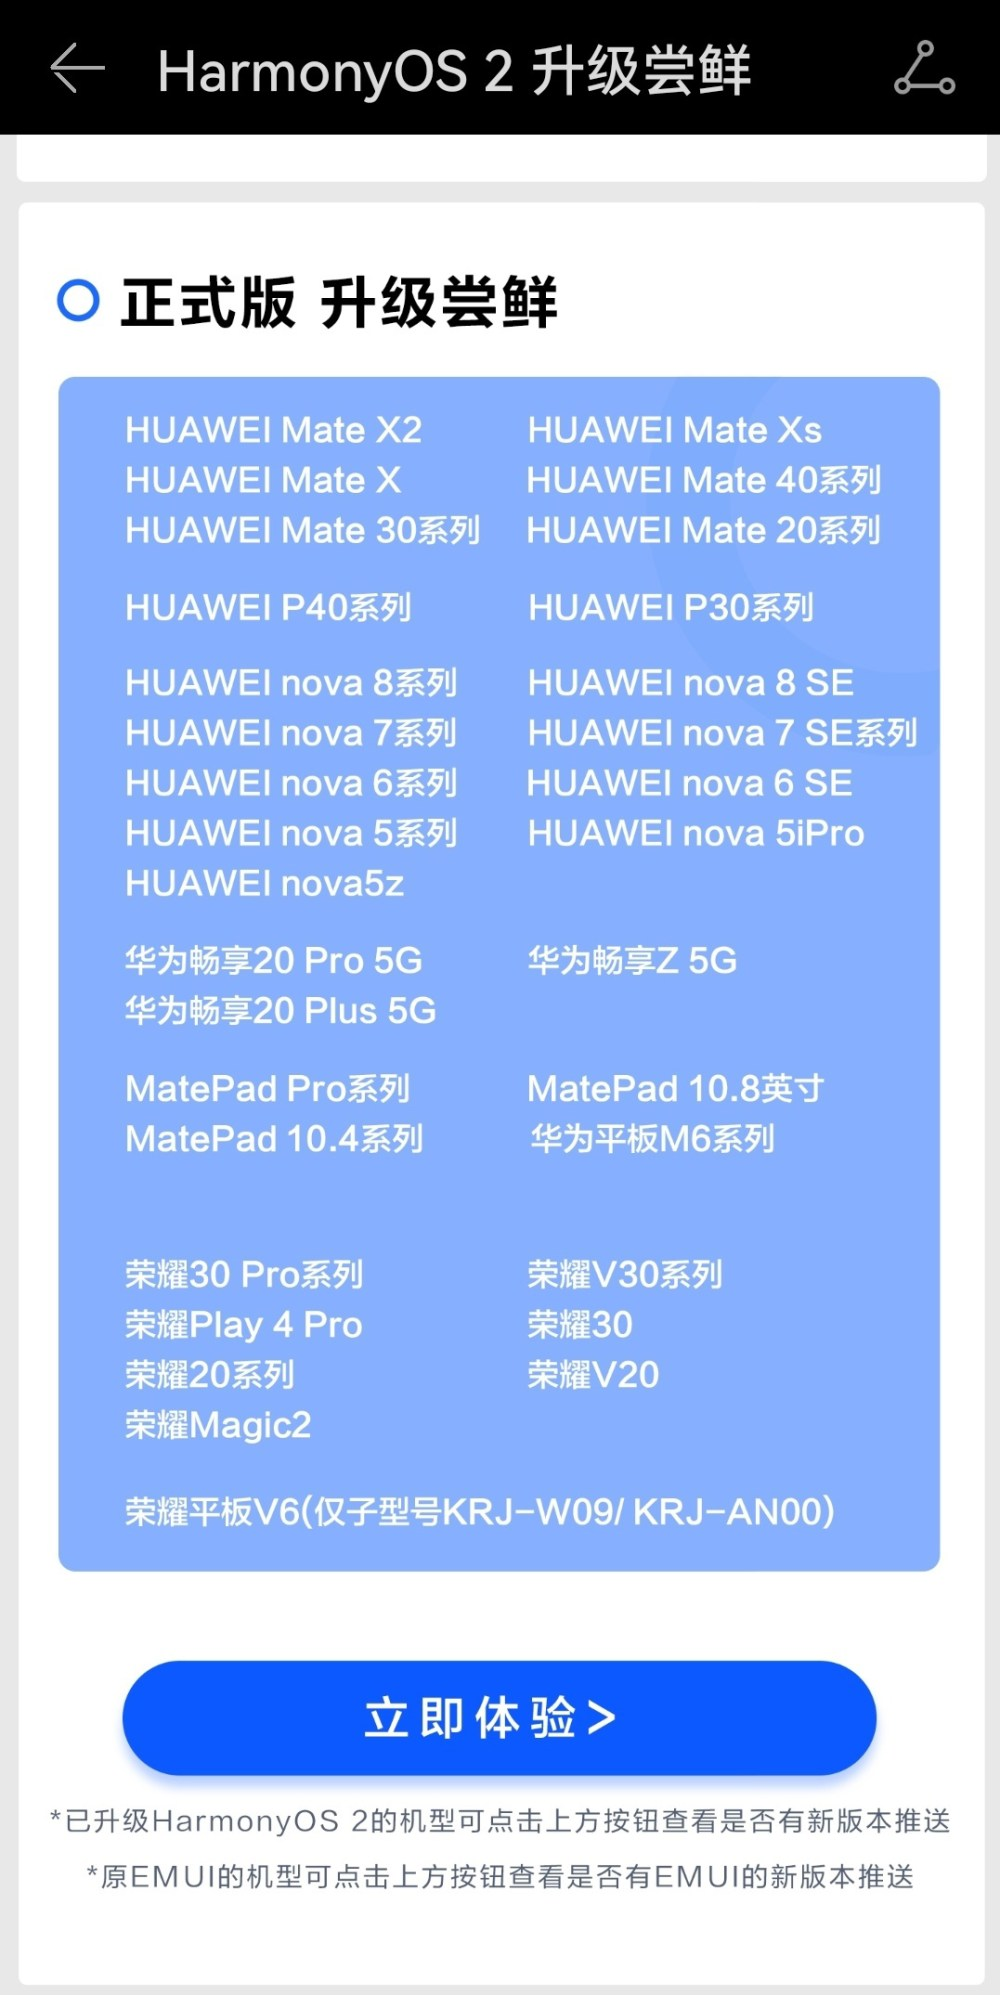 These 32 Huawei models are eligible for official version update